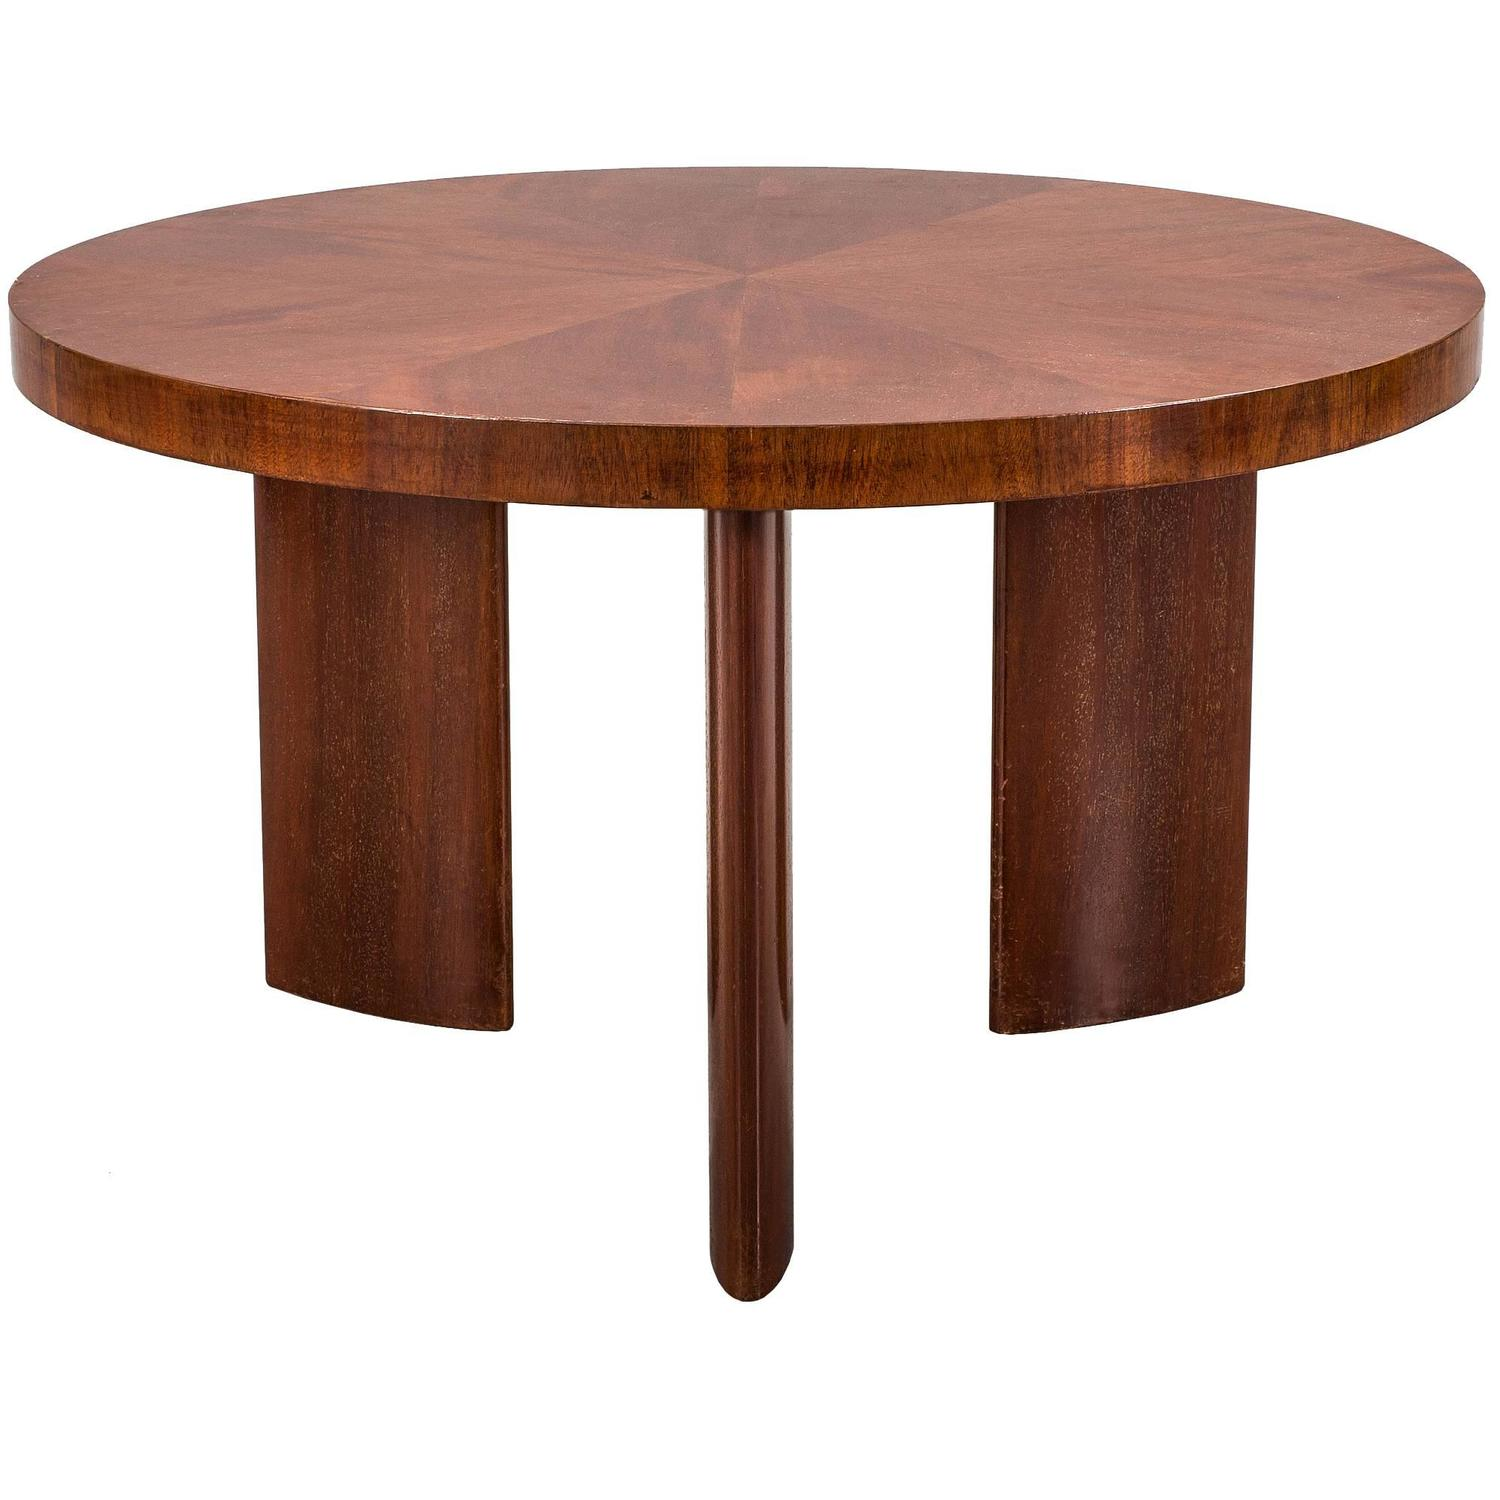 Italian 1920s Carved Wood Coffee Table For Sale at 1stdibs